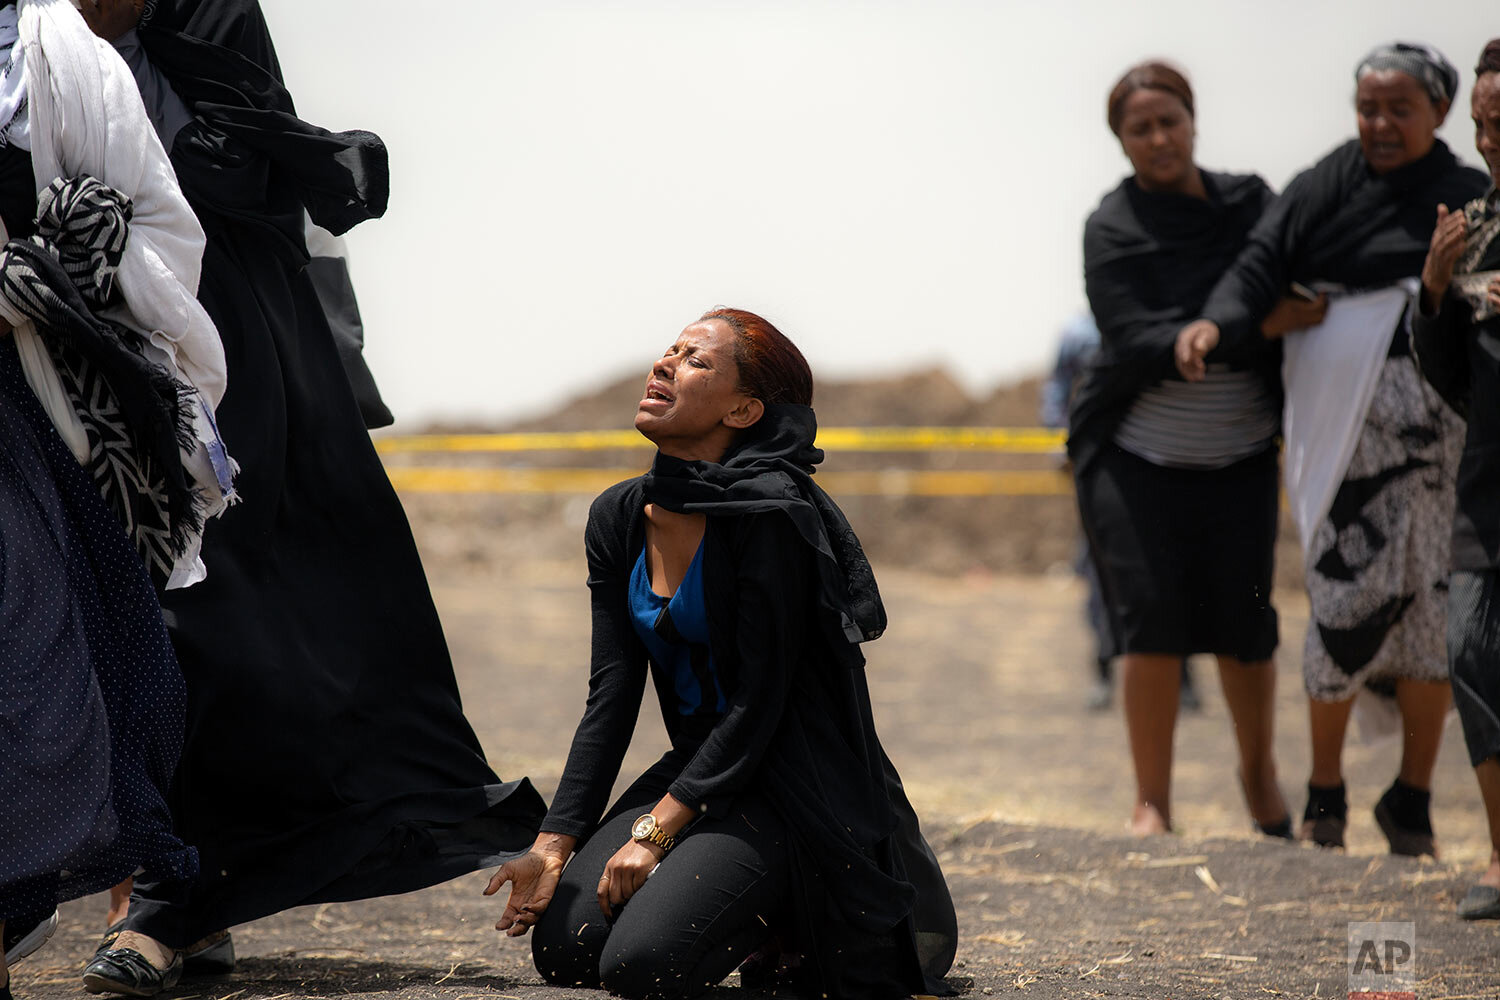 Relatives of crash victims mourn at the scene where the Ethiopian Airlines Boeing 737 Max 8 passenger jet crashed shortly after takeoff, killing all 157 on board, near Bishoftu, Ethiopia, south-east of Addis Ababa, on March 14, 2019. (AP Photo/Mulugeta Ayene)